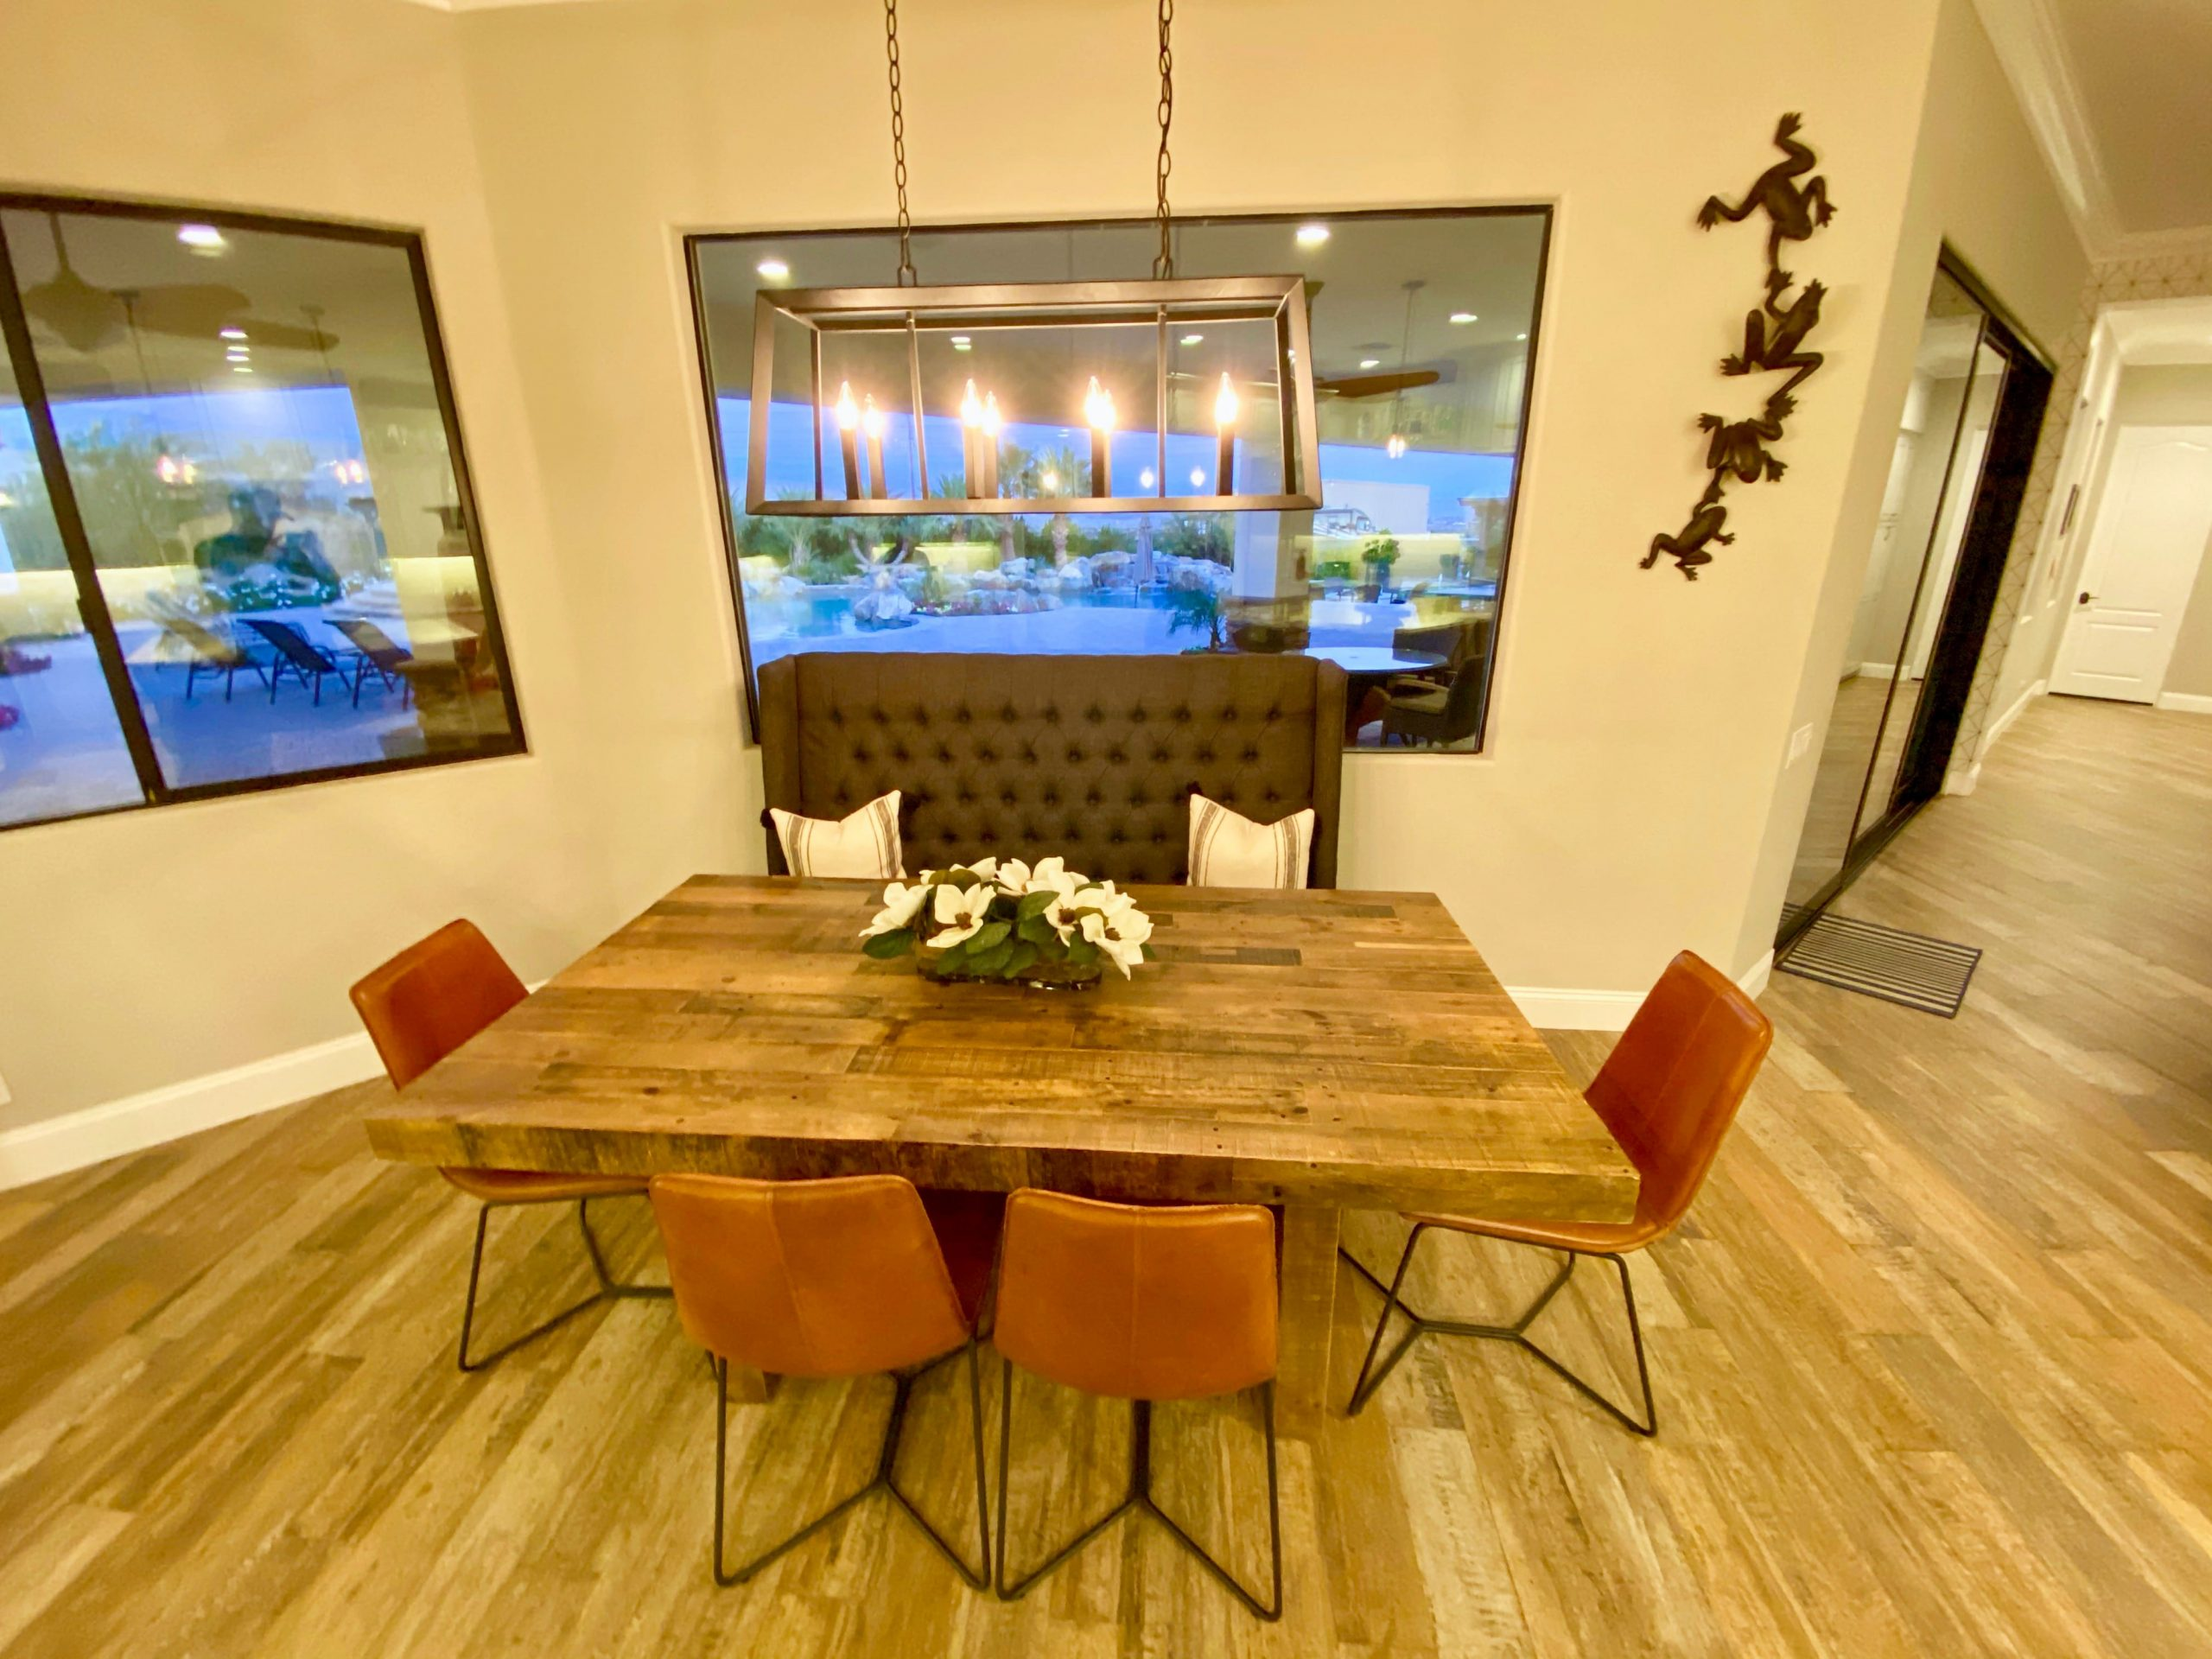 The Estate at Via Las Palmas - Dining Space in Kitchen